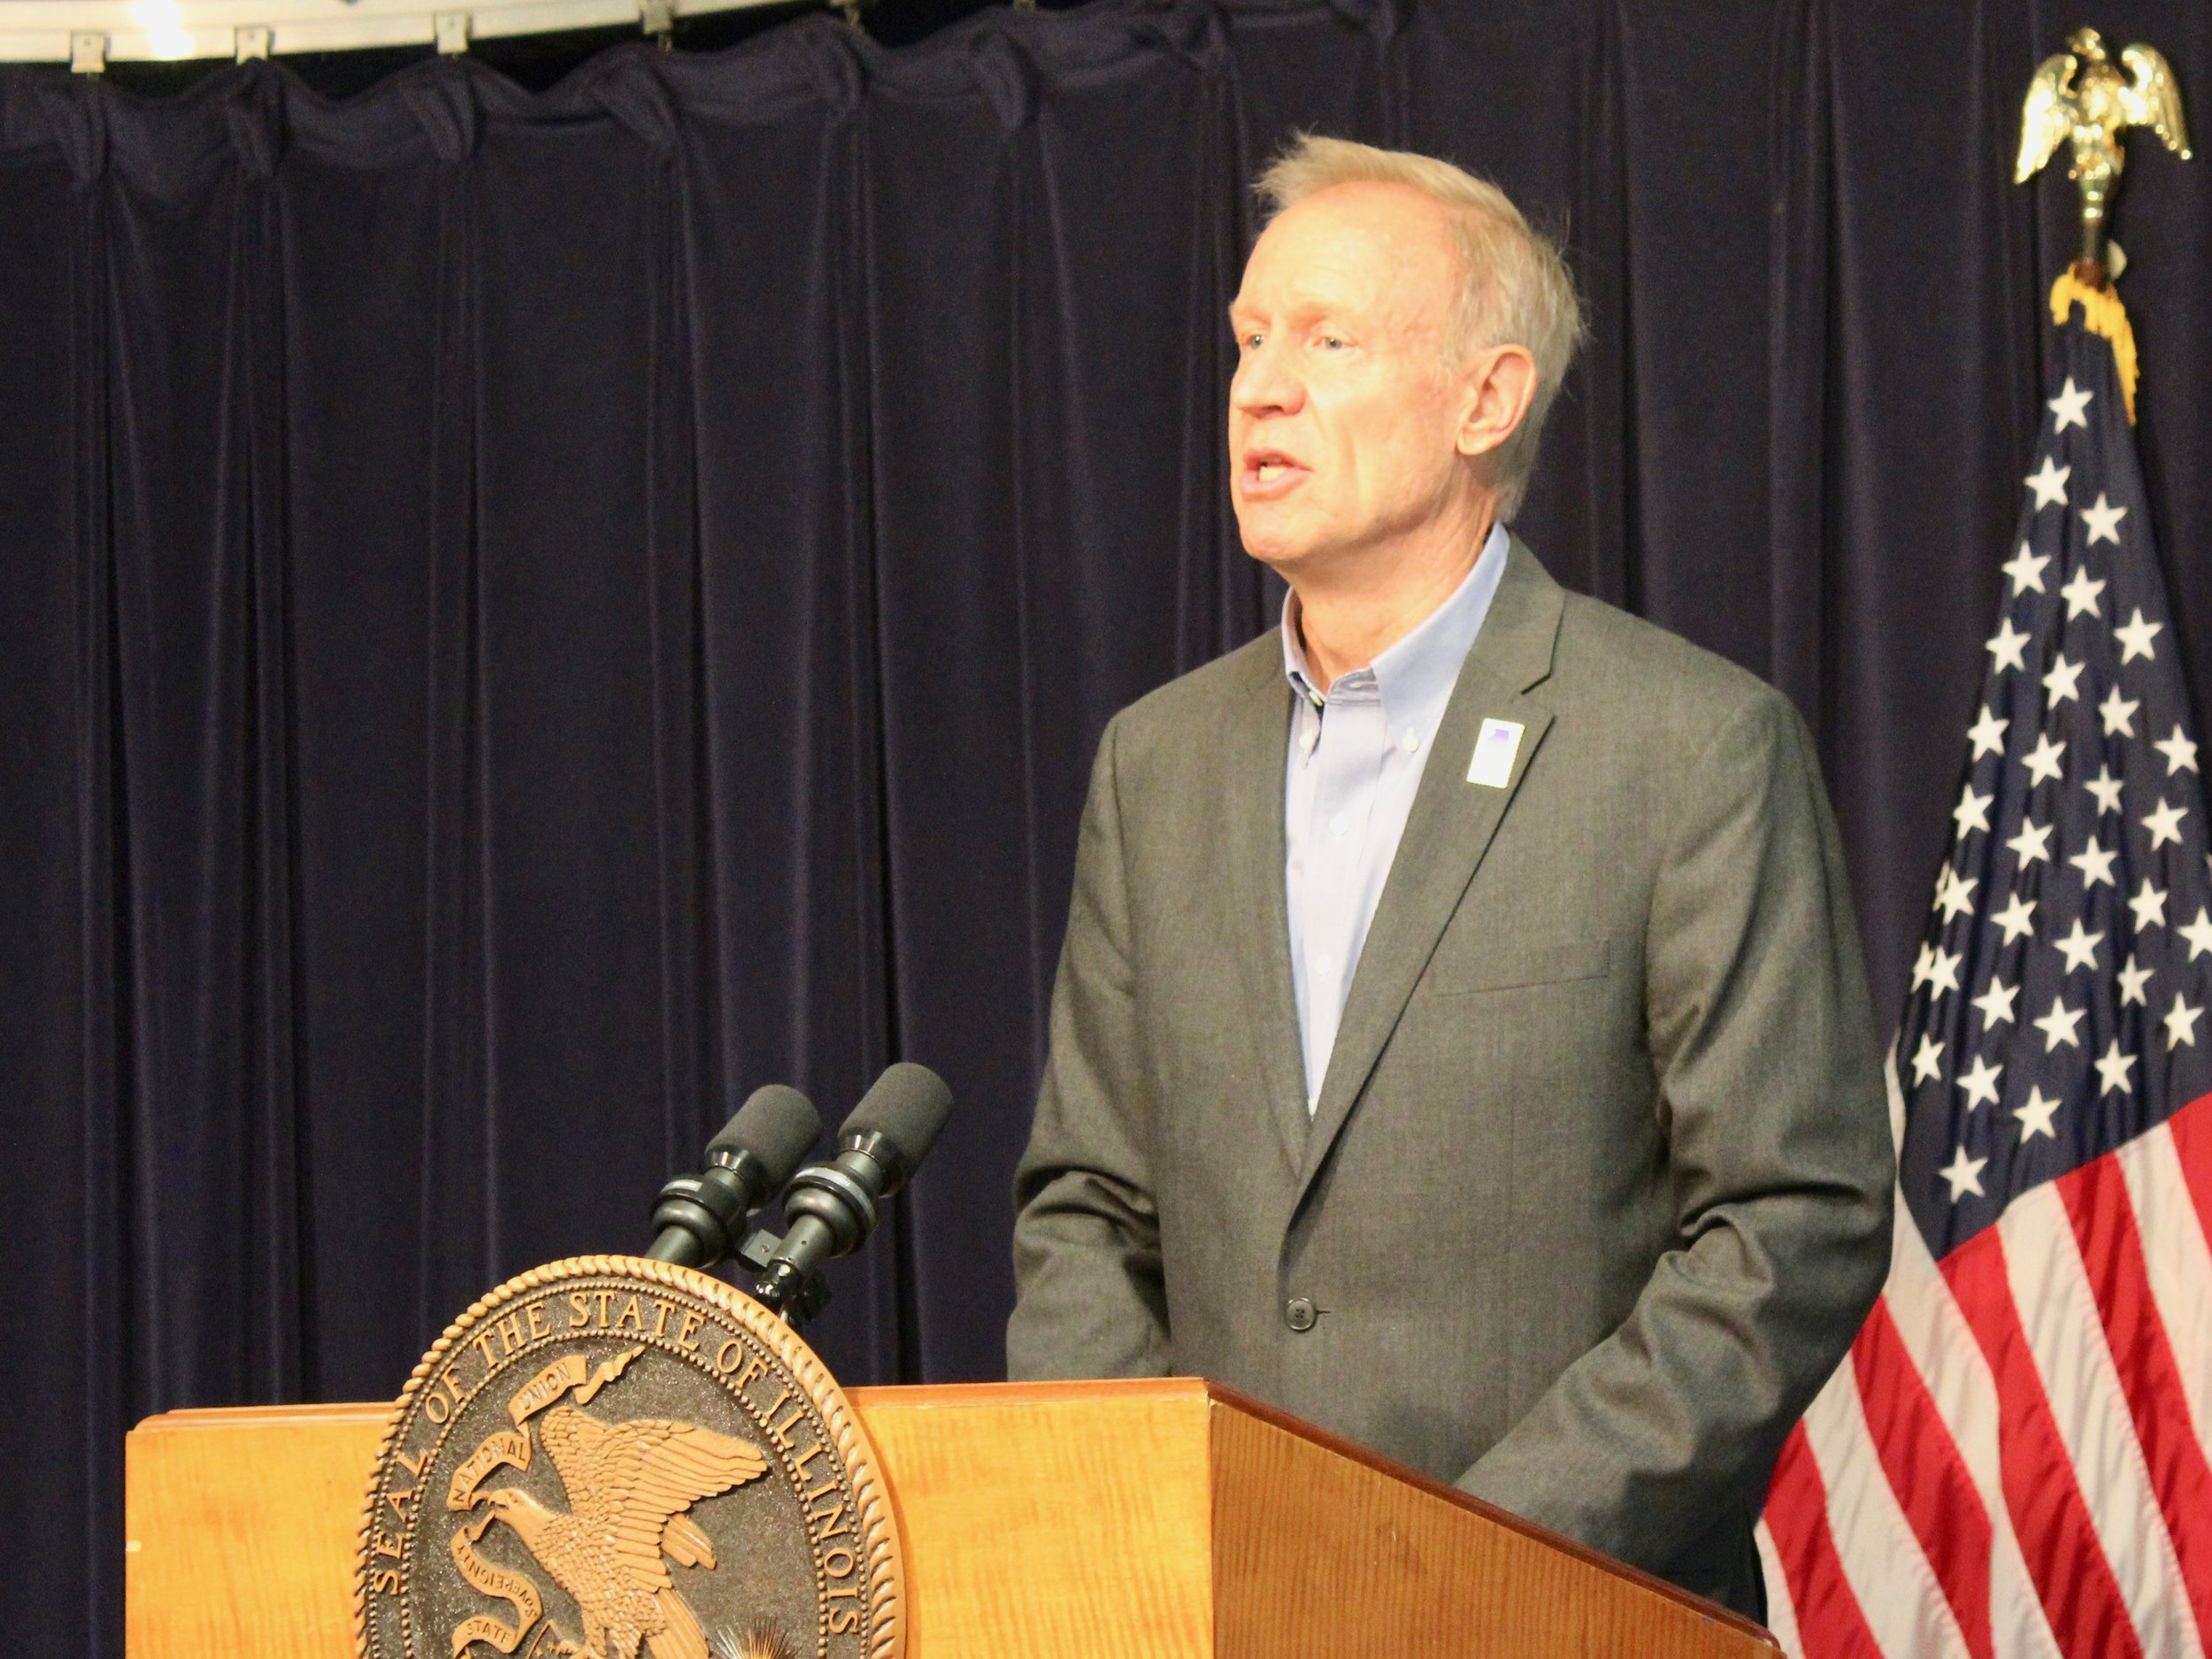 Gov. Rauner is challenging other statewide officials to observe the same hiring reforms he just signed into law for his office. (One Illinois/Ted Cox)